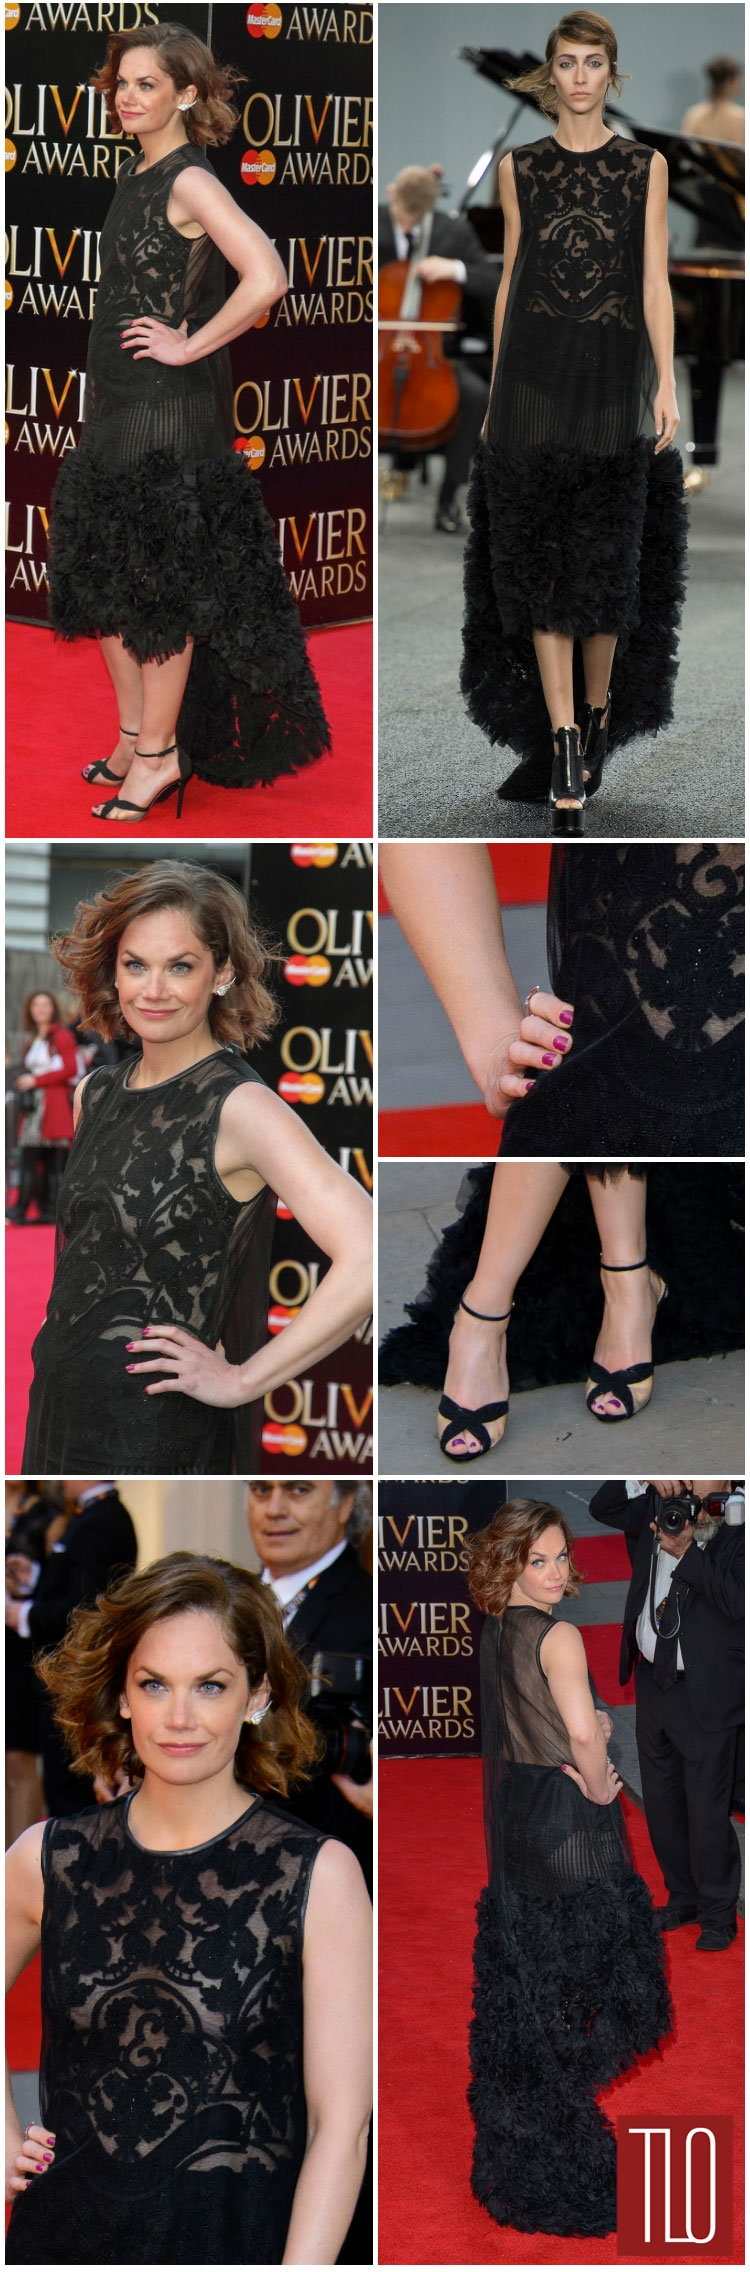 Ruth-Wilson-Erdem-Laurence-Olivier-Awards-2014-Tom-Lorenzo-Site-TLO